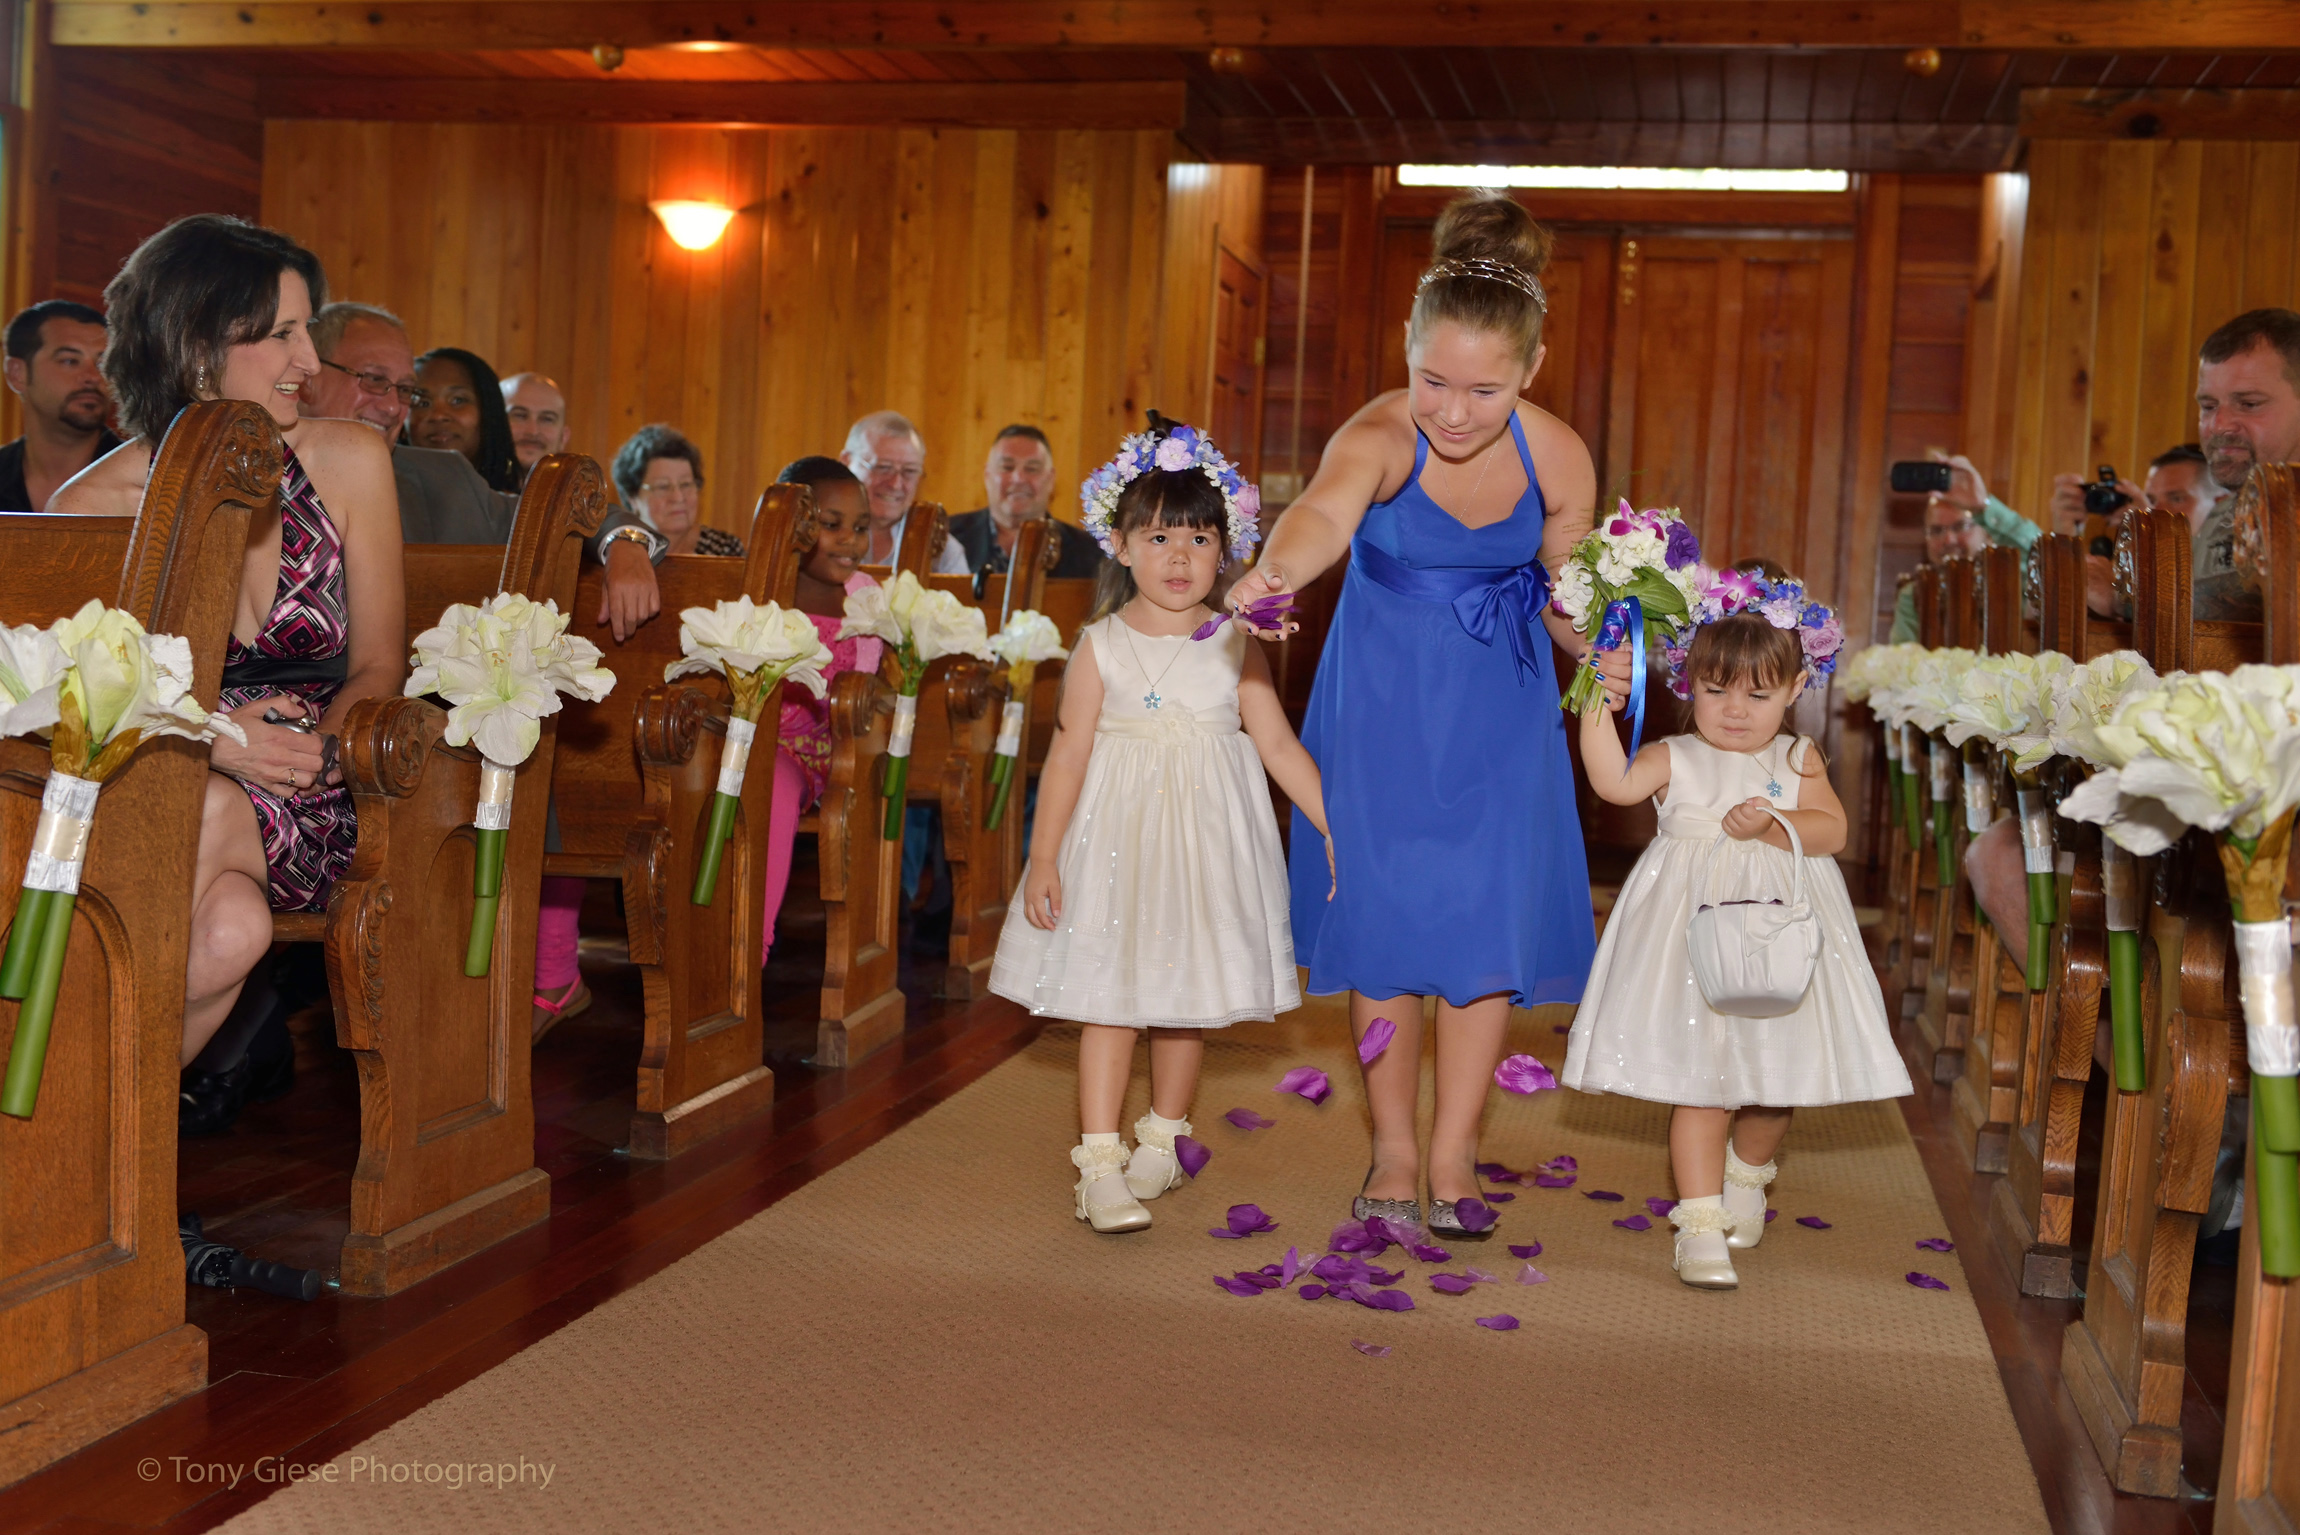 port orange girls Find a great location for a girl's birthday party in port orange, florida search our birthday venue database for top birthday party locations in port orange, florida for your child.